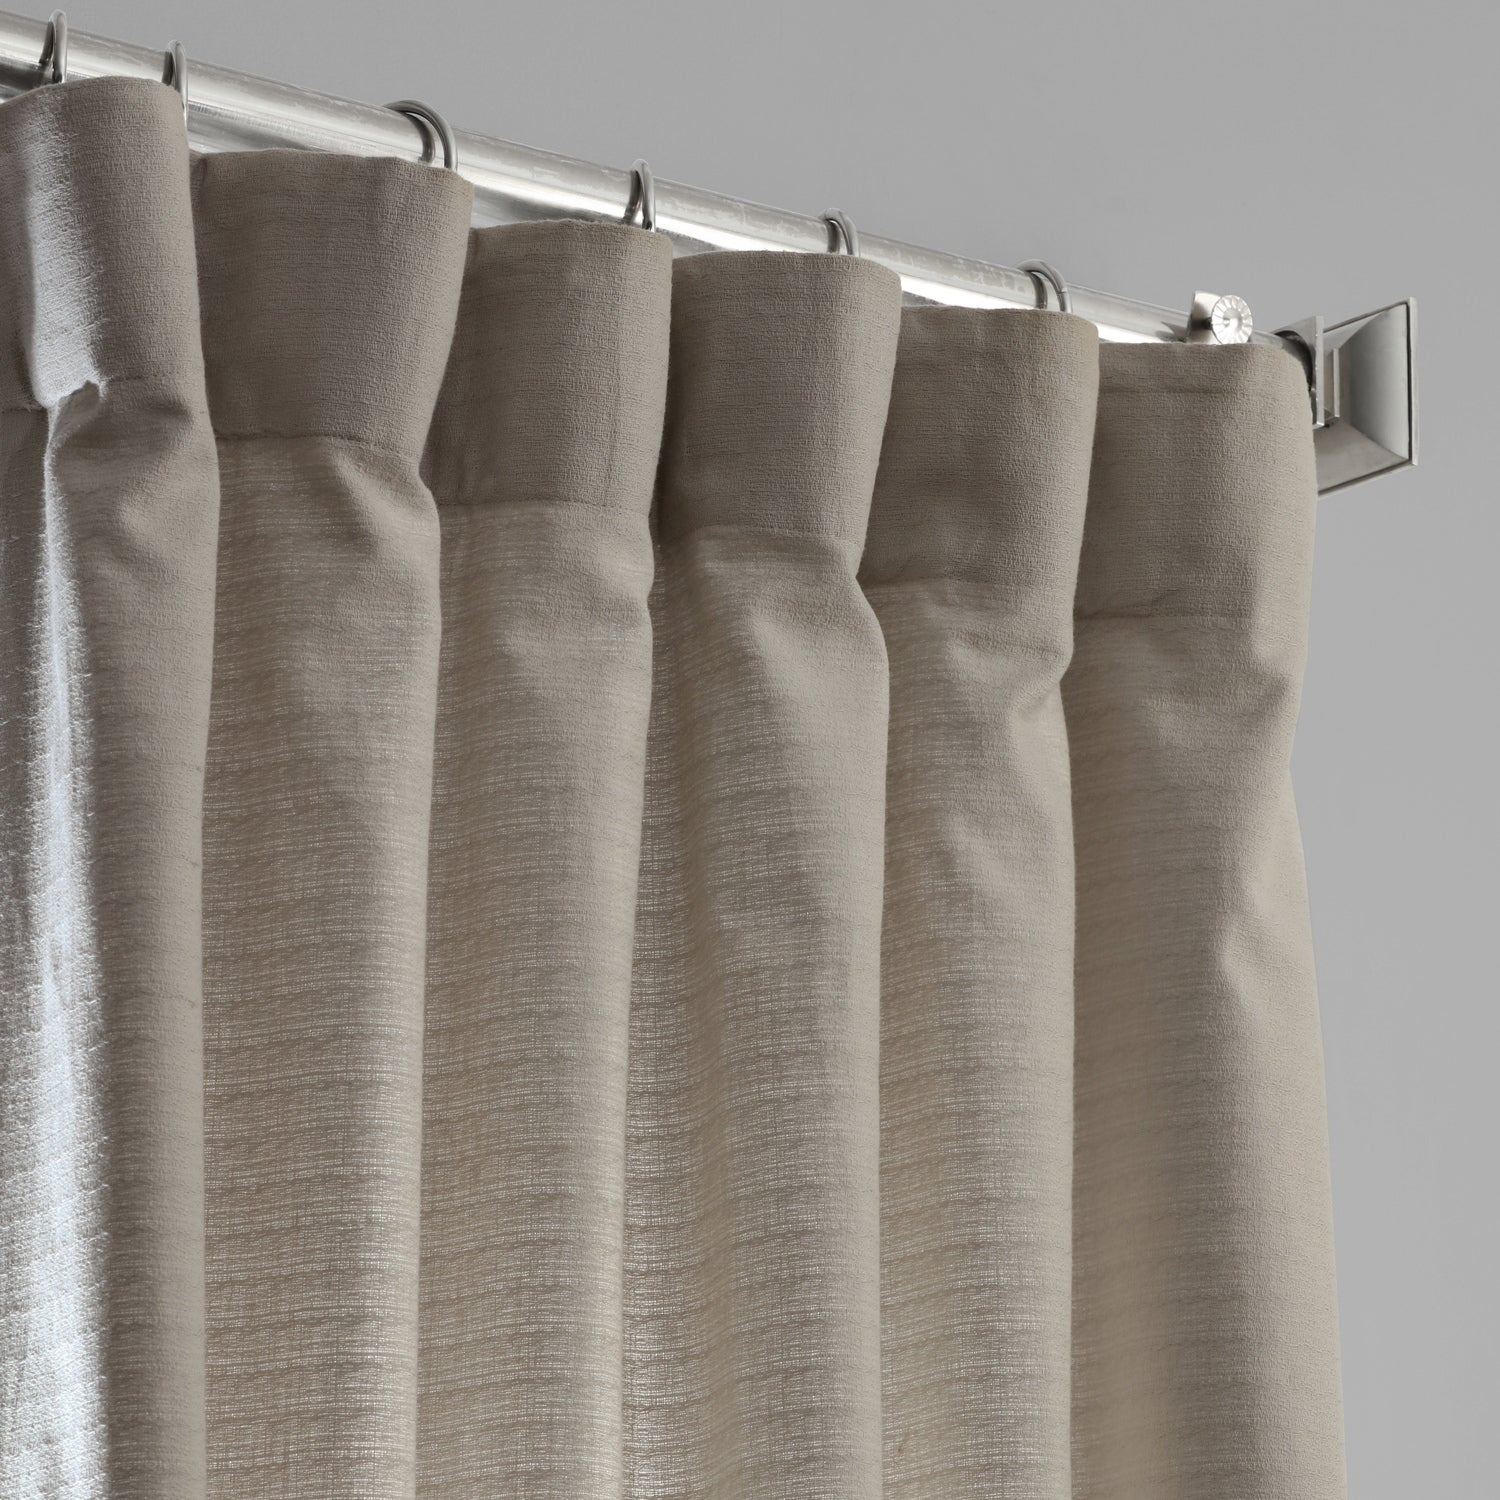 Shop Exclusive Fabrics Bark Weave Solid Cotton Curtain – On For Bark Weave Solid Cotton Curtains (View 8 of 20)